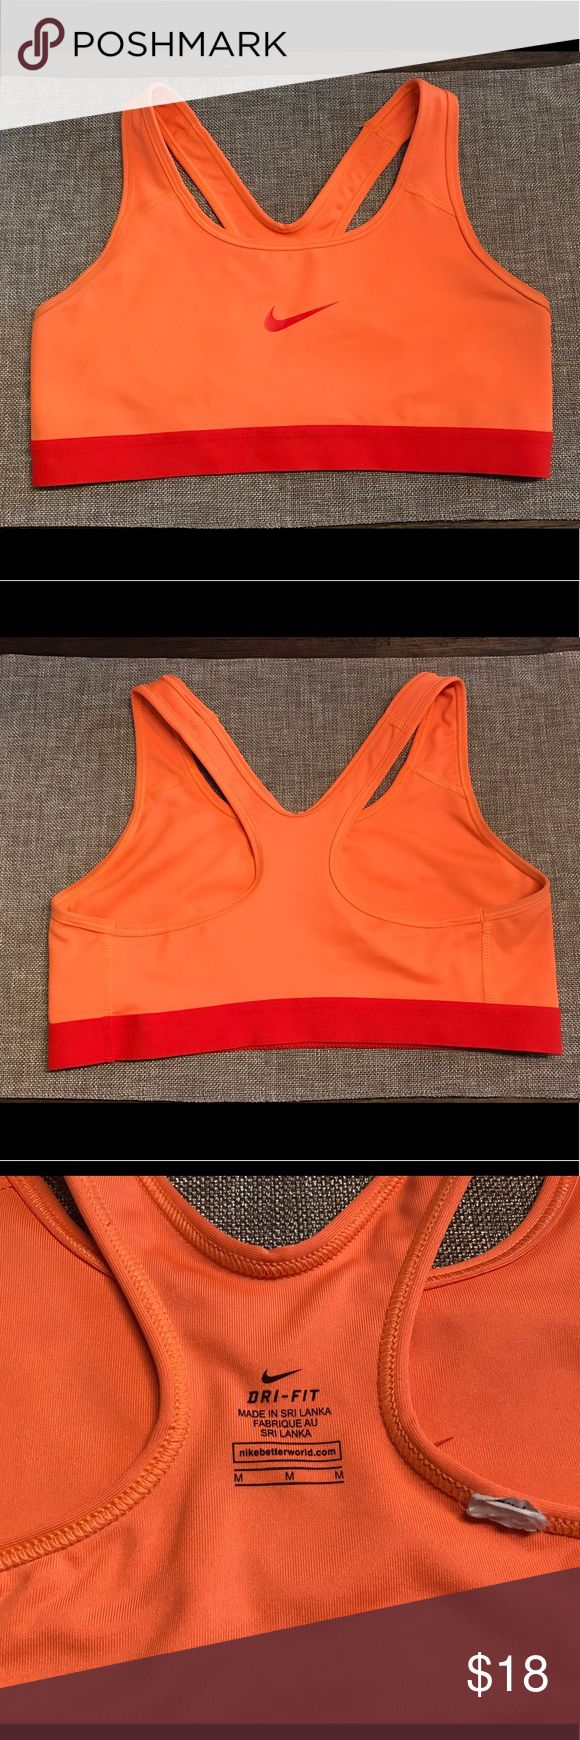 Nike Dri-Fit Orange/Red Sports Bra- Medium In excellent condition. Nike Dri-Fit Sports Bra is in size Medium. Color is orange with red Nike sign and elastic band. Nike Intimates & Sleepwear Bras